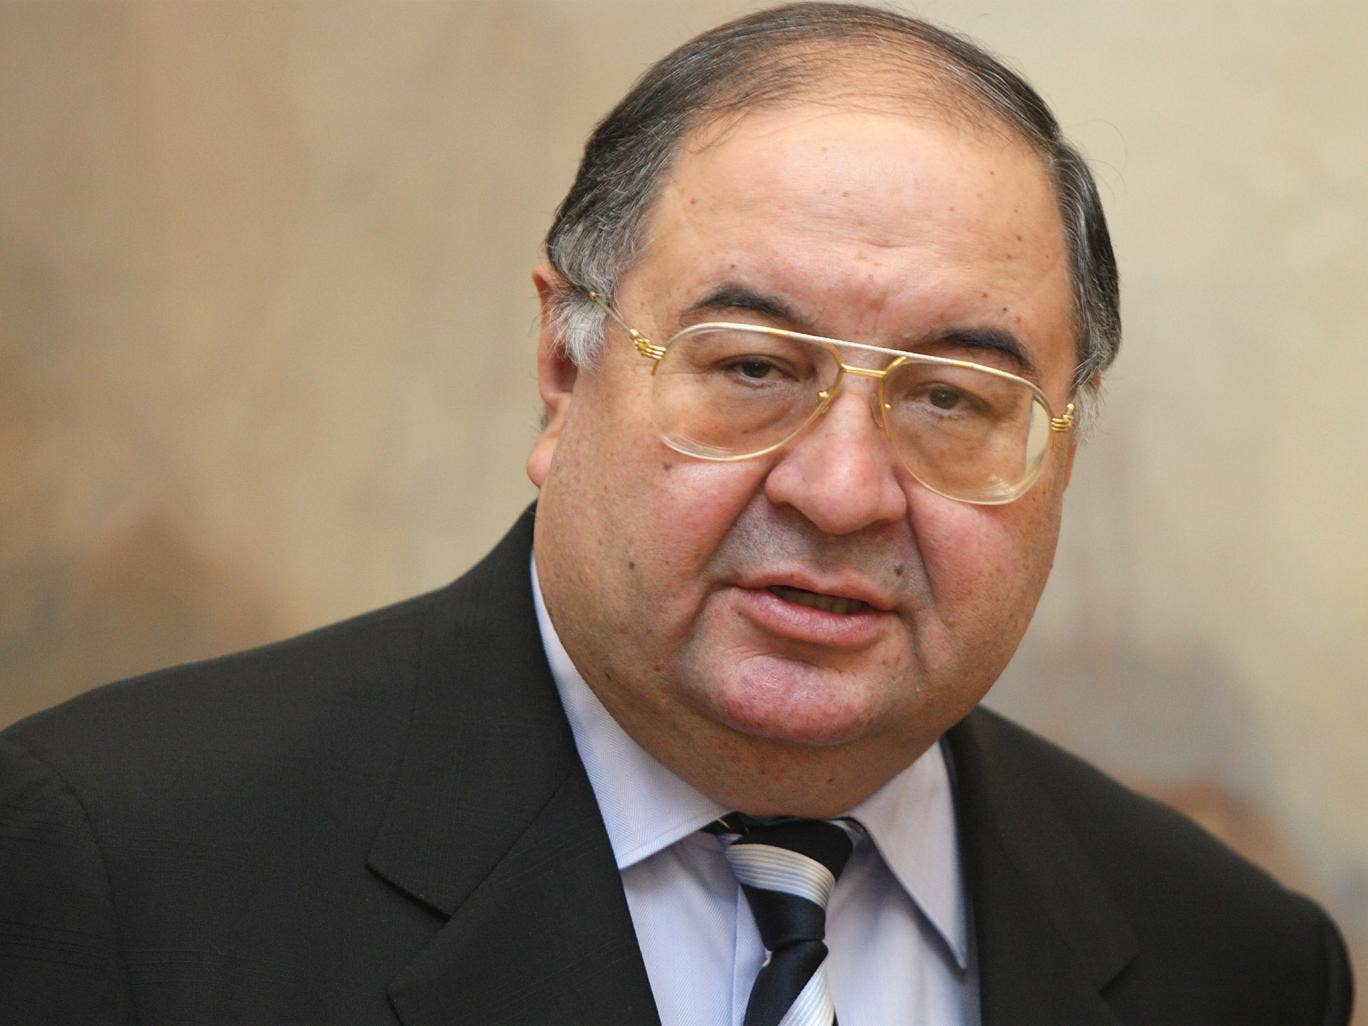 Alisher Usmanov holds almost 56 per cent of MegaFon and has a 29 per cent stake in Arsenal Football Club